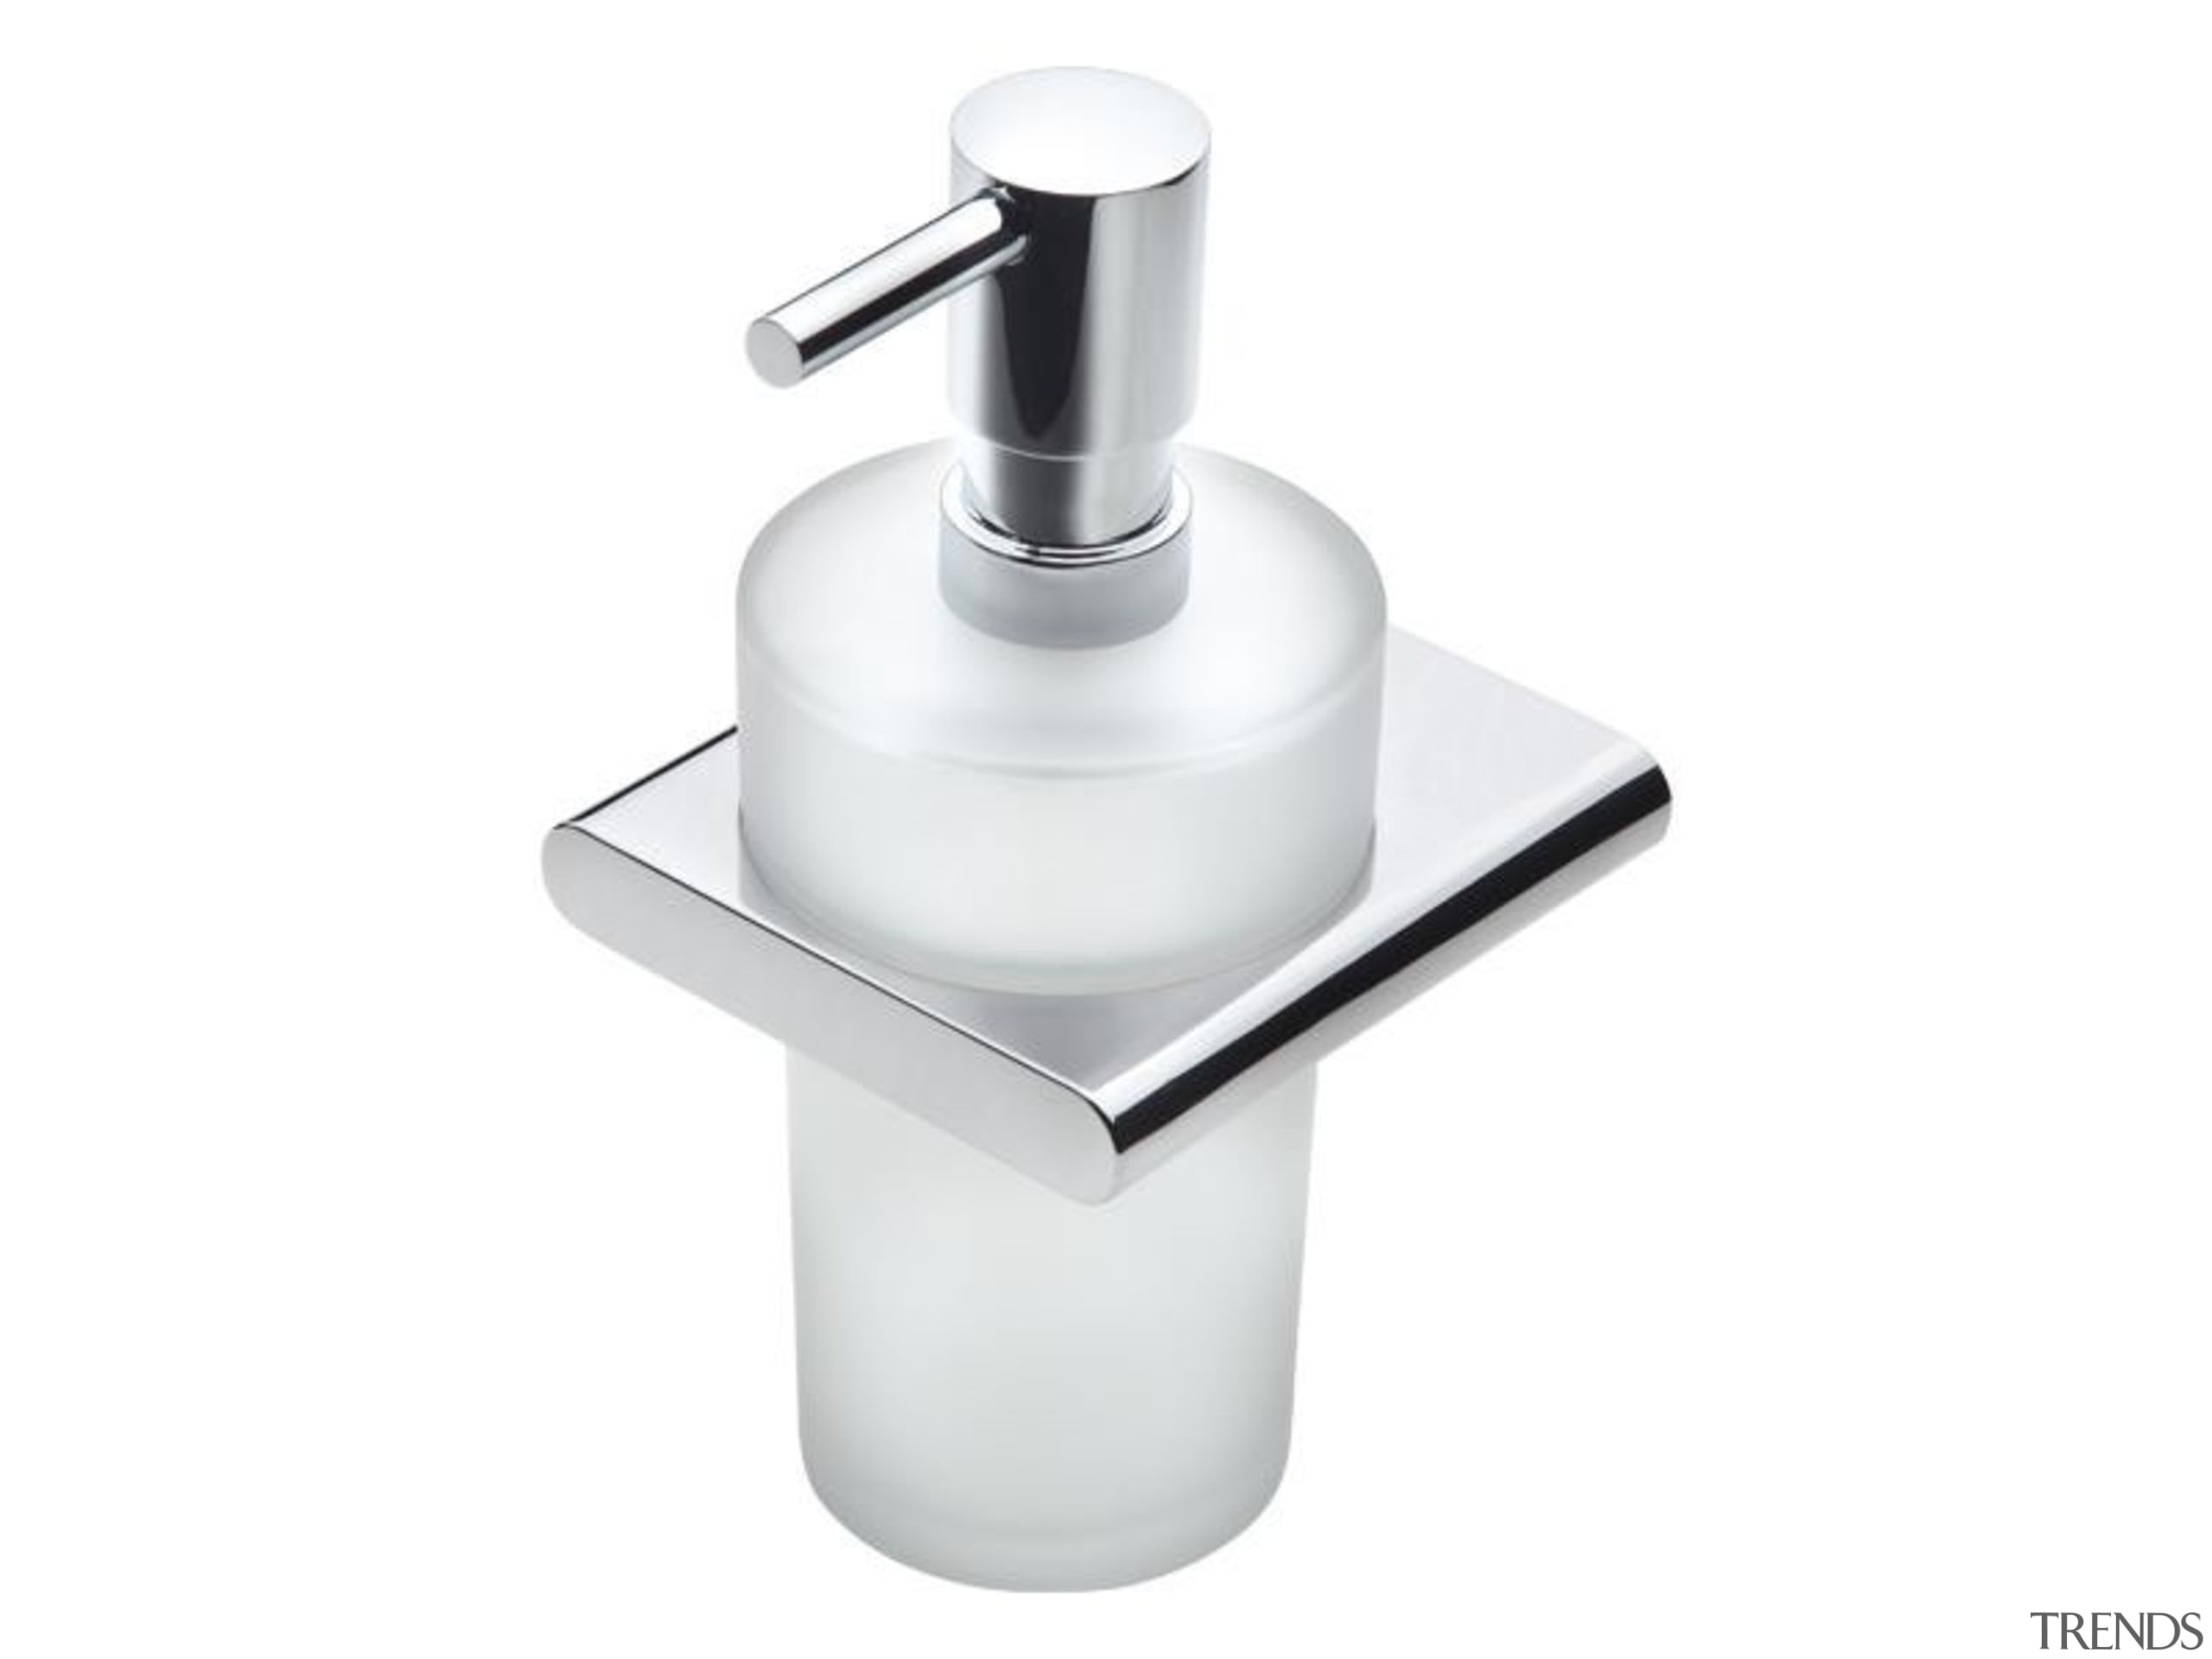 lsdd resi.jpg - lsdd_resi.jpg - bathroom accessory | bathroom accessory, product, product design, soap dispenser, tap, white